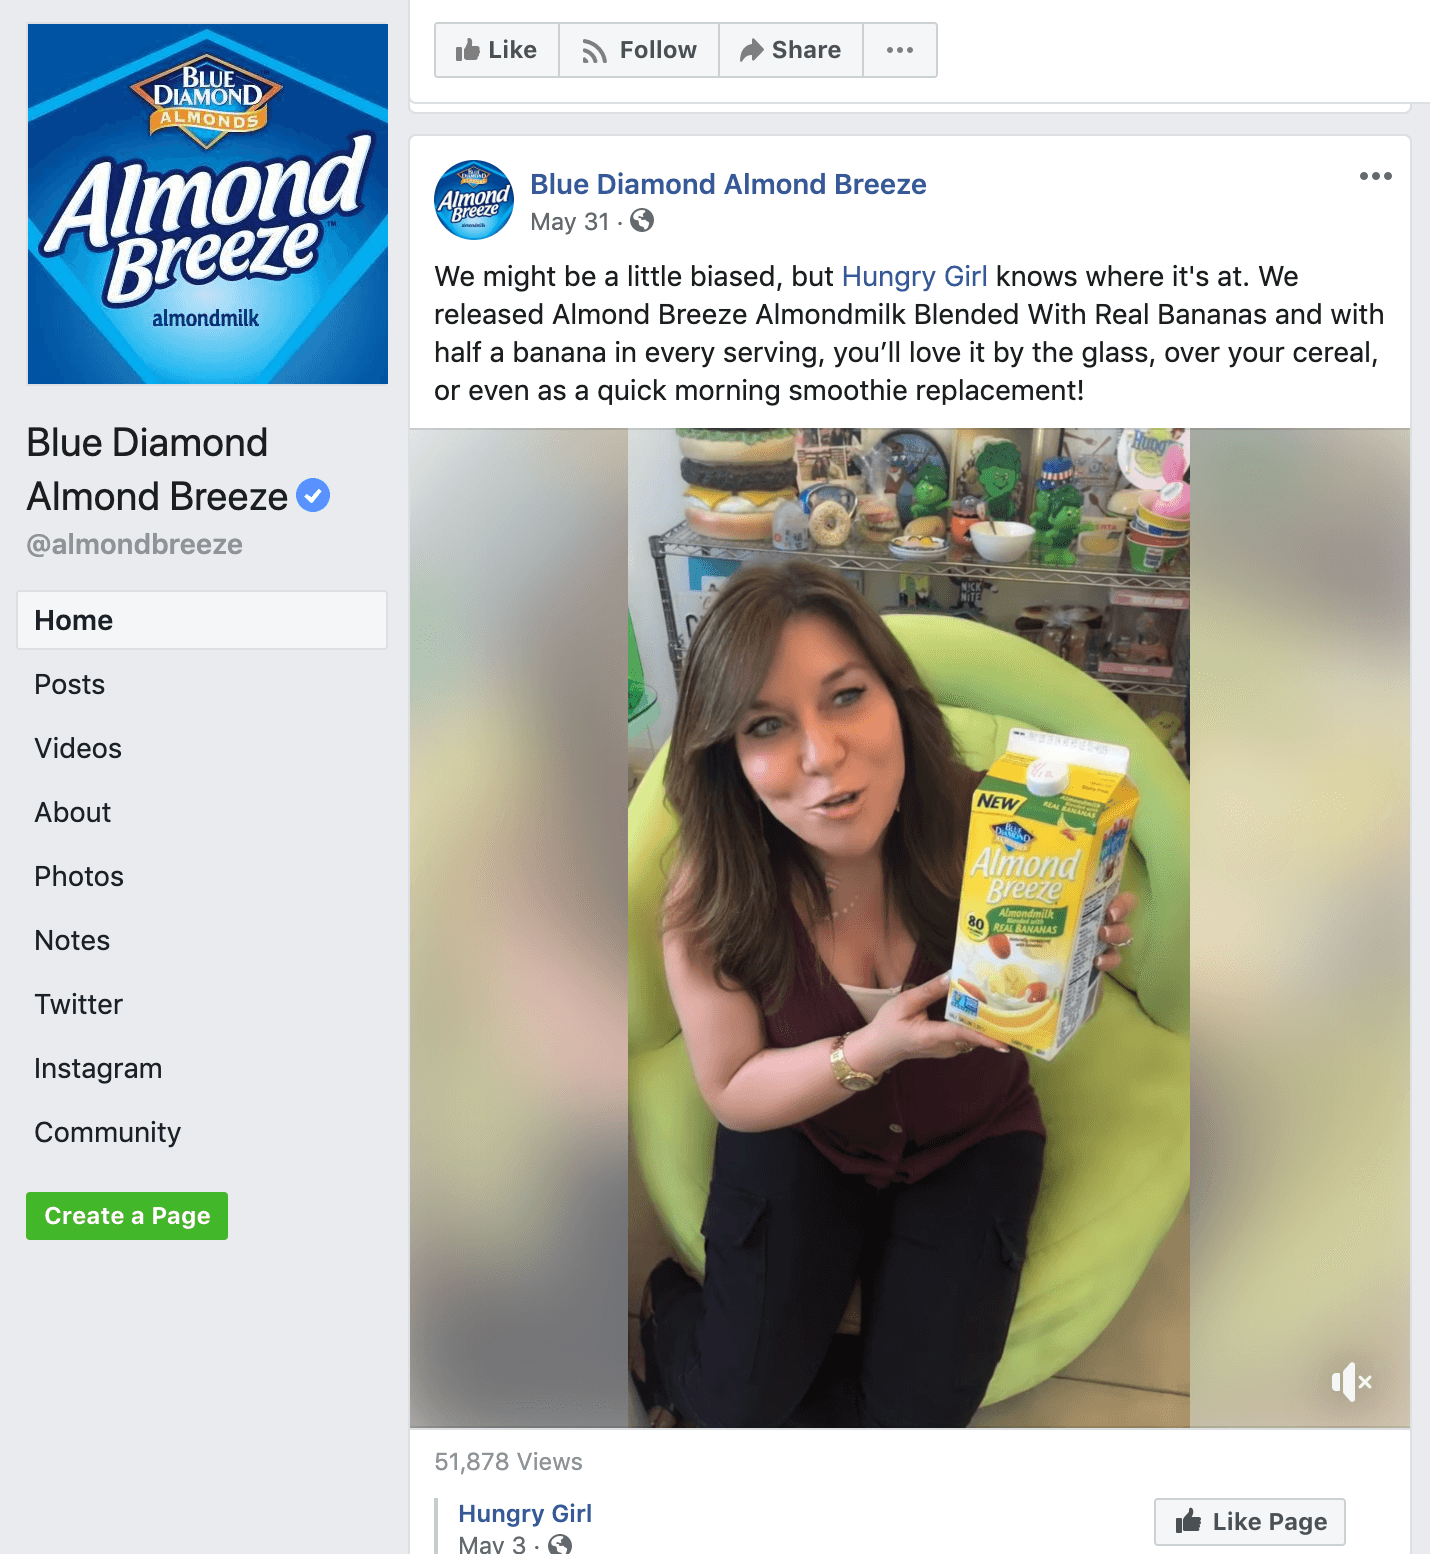 Screenshot of Almond Breeze Facebook page